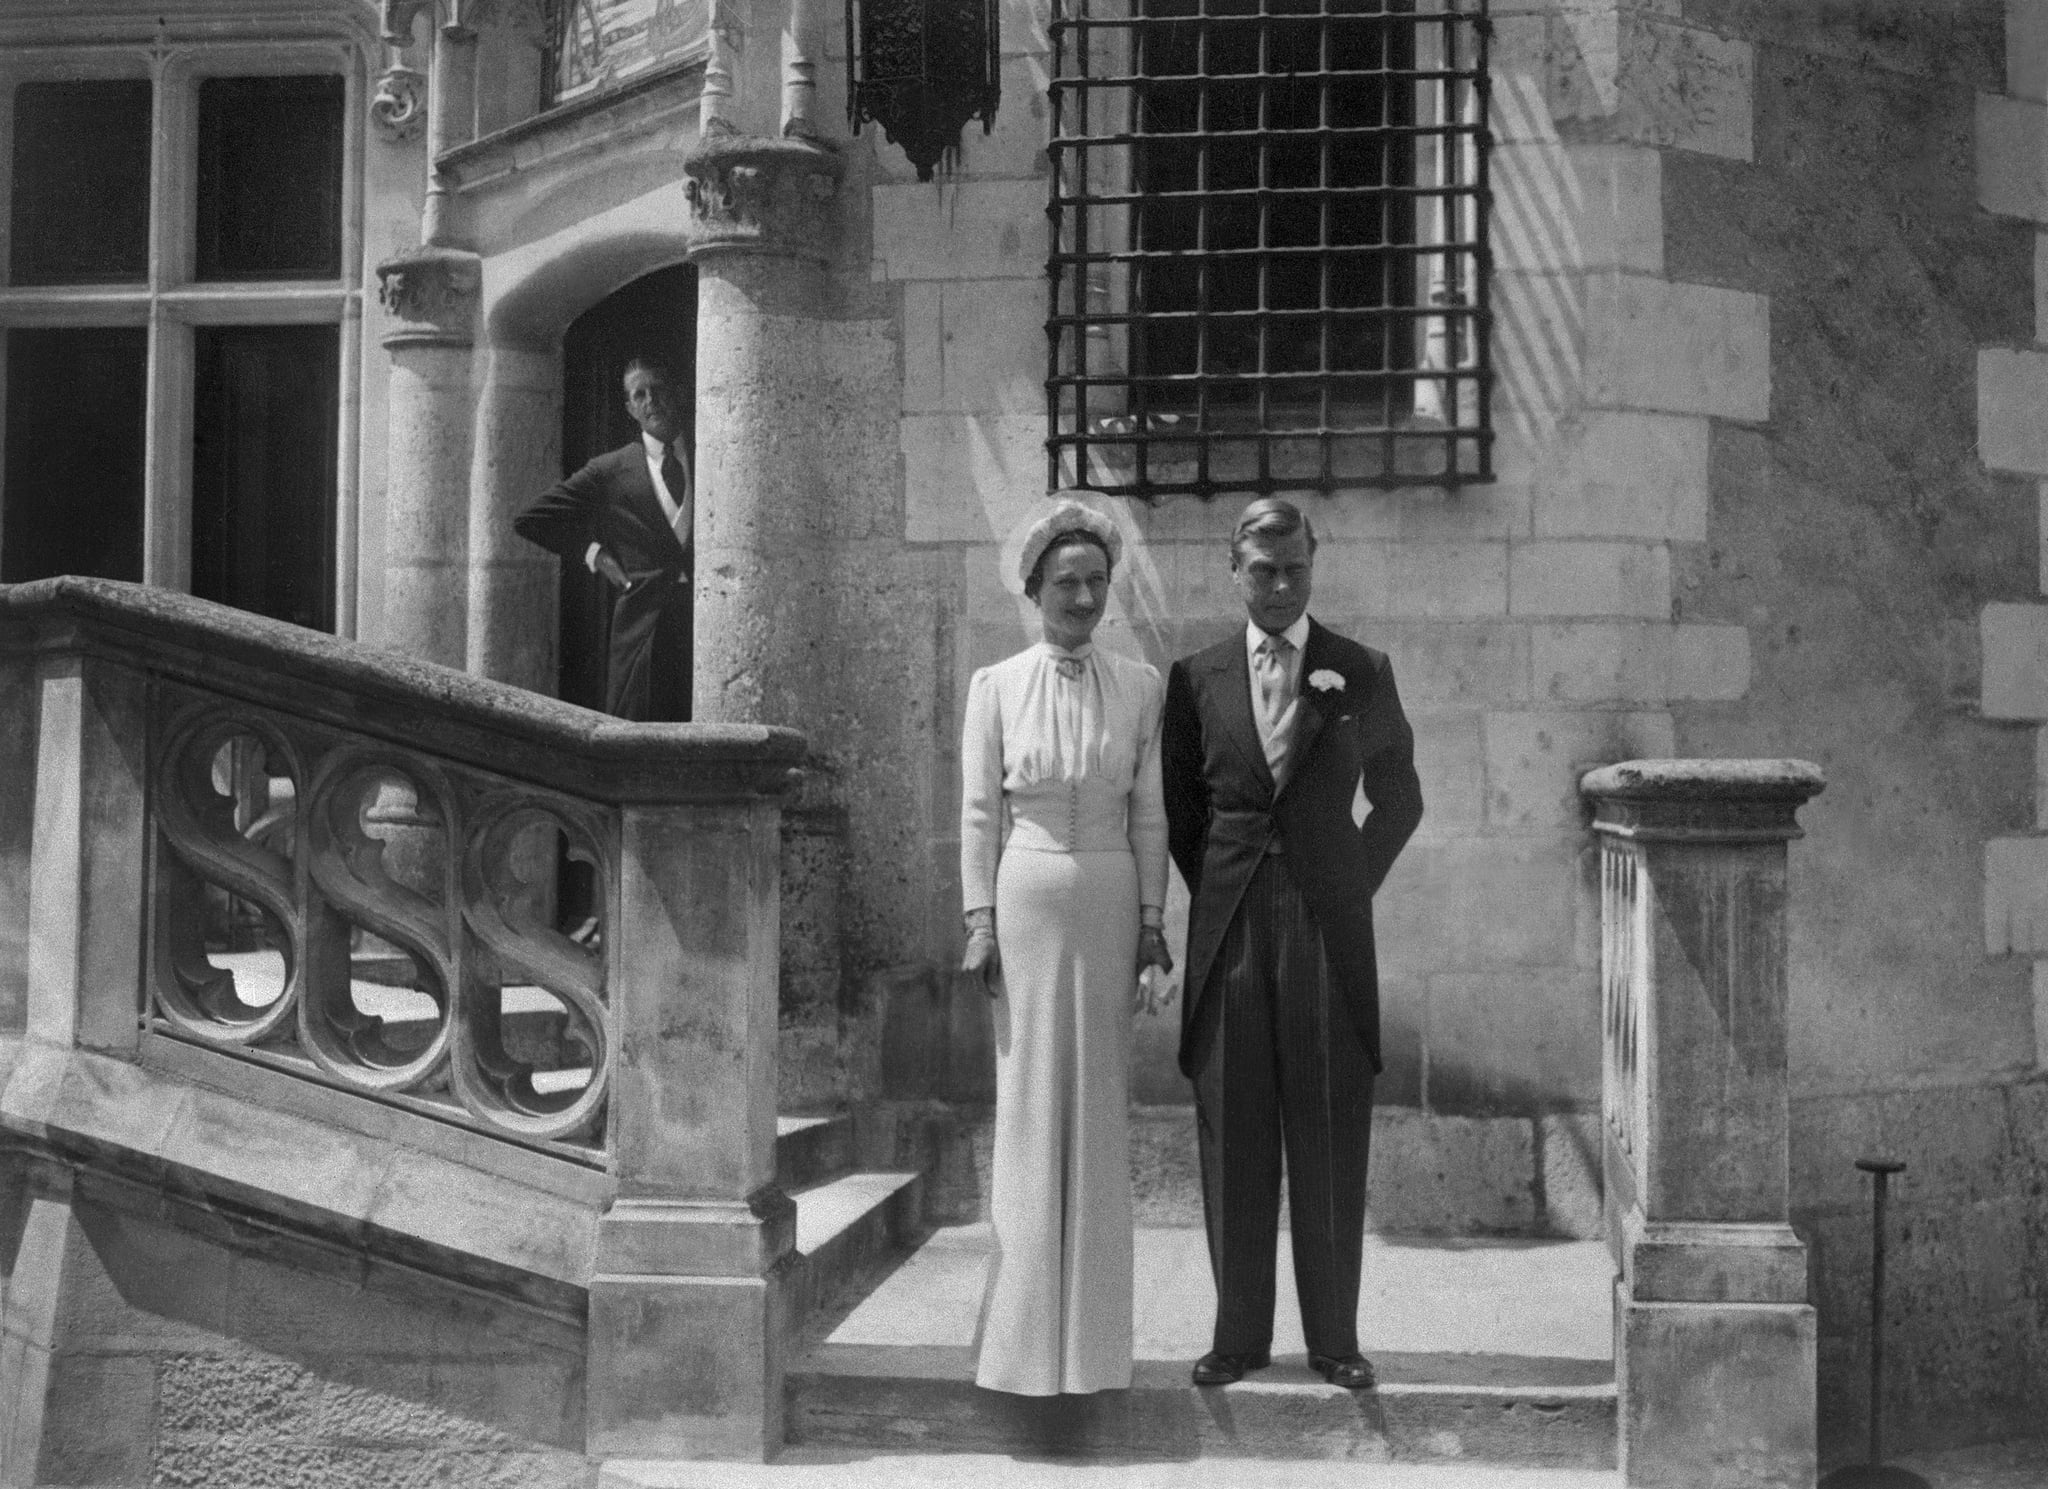 Edward, Duke of Windsor —the former King Edward VIII of England —controversially married divorcée Wallis Simpson in June 1937.